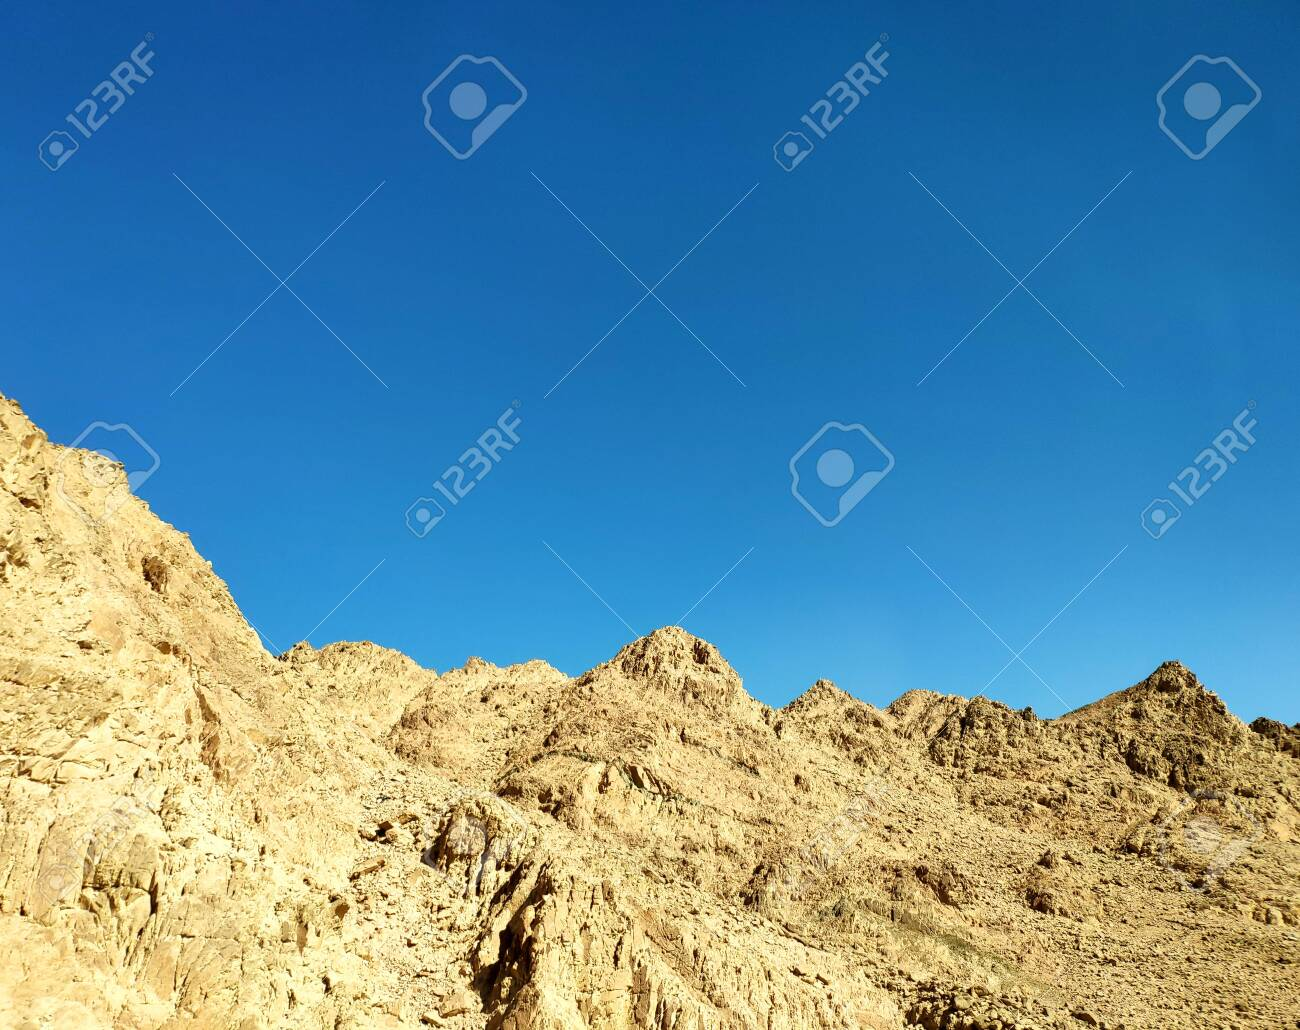 Rocks In The Desert Sinai Desert Mountains Landscape Wallpaper 1300x1030